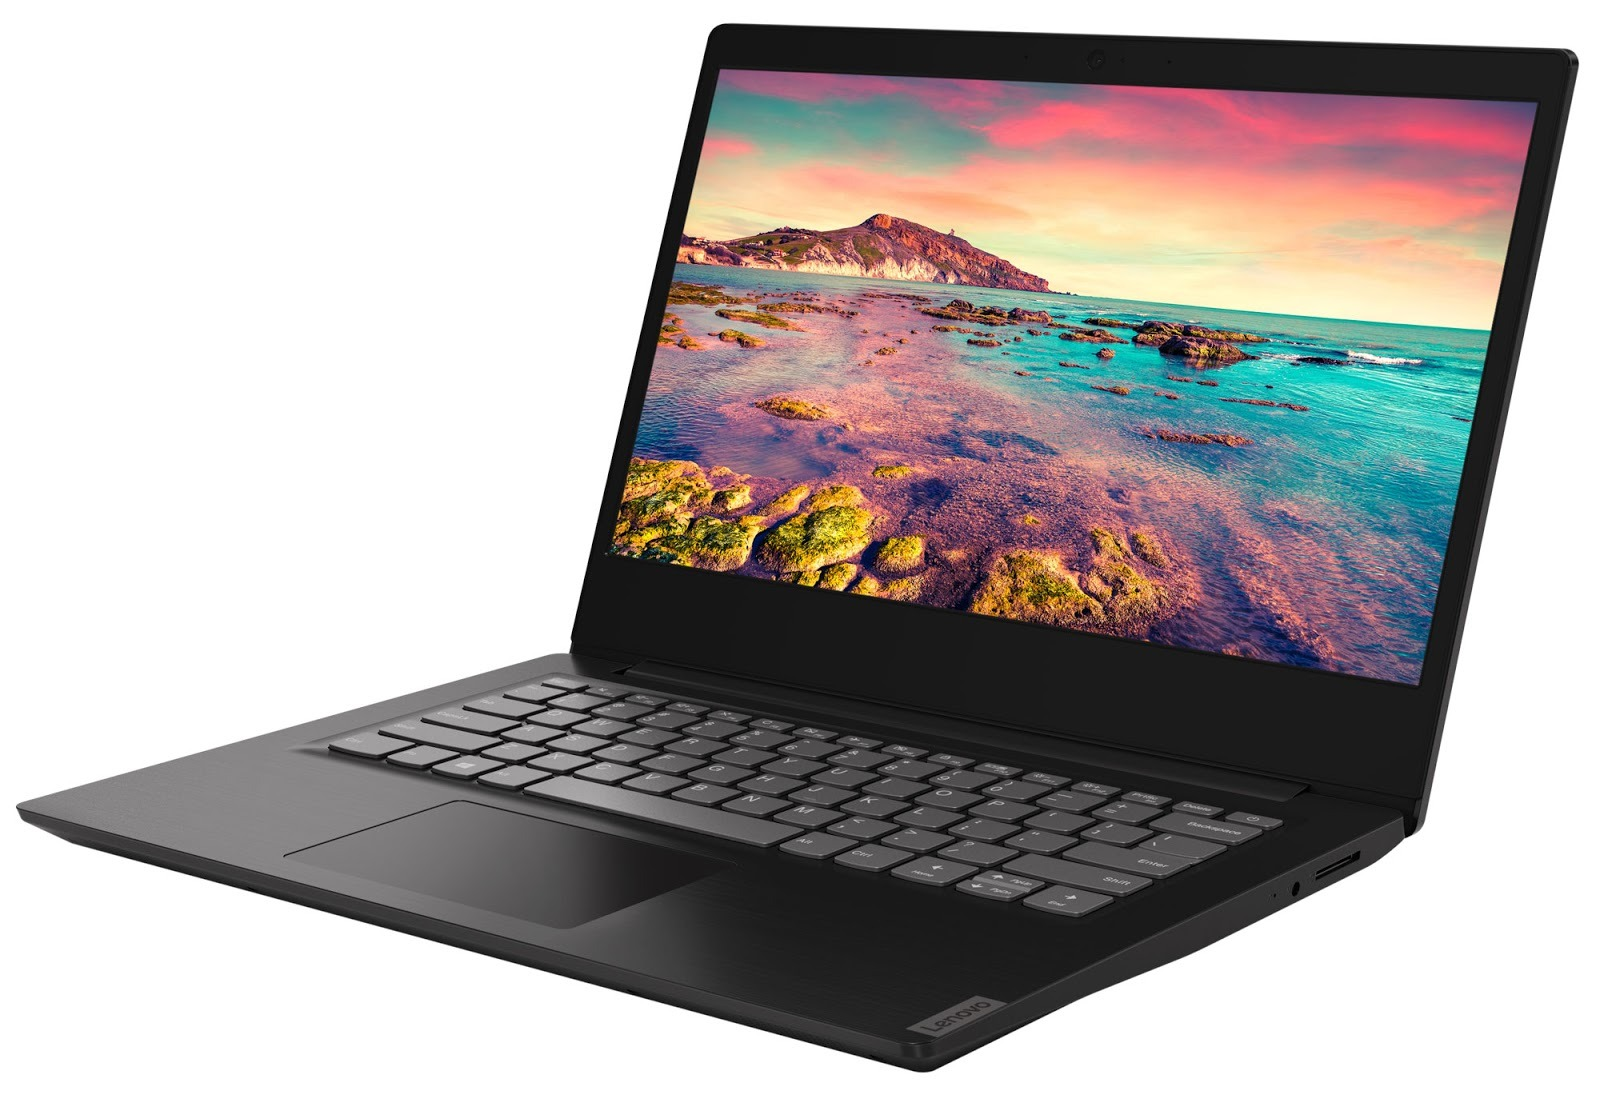 Фото 1. Ноутбук Lenovo ideapad S145-15IWL Granite Black (81MV00QFRA)